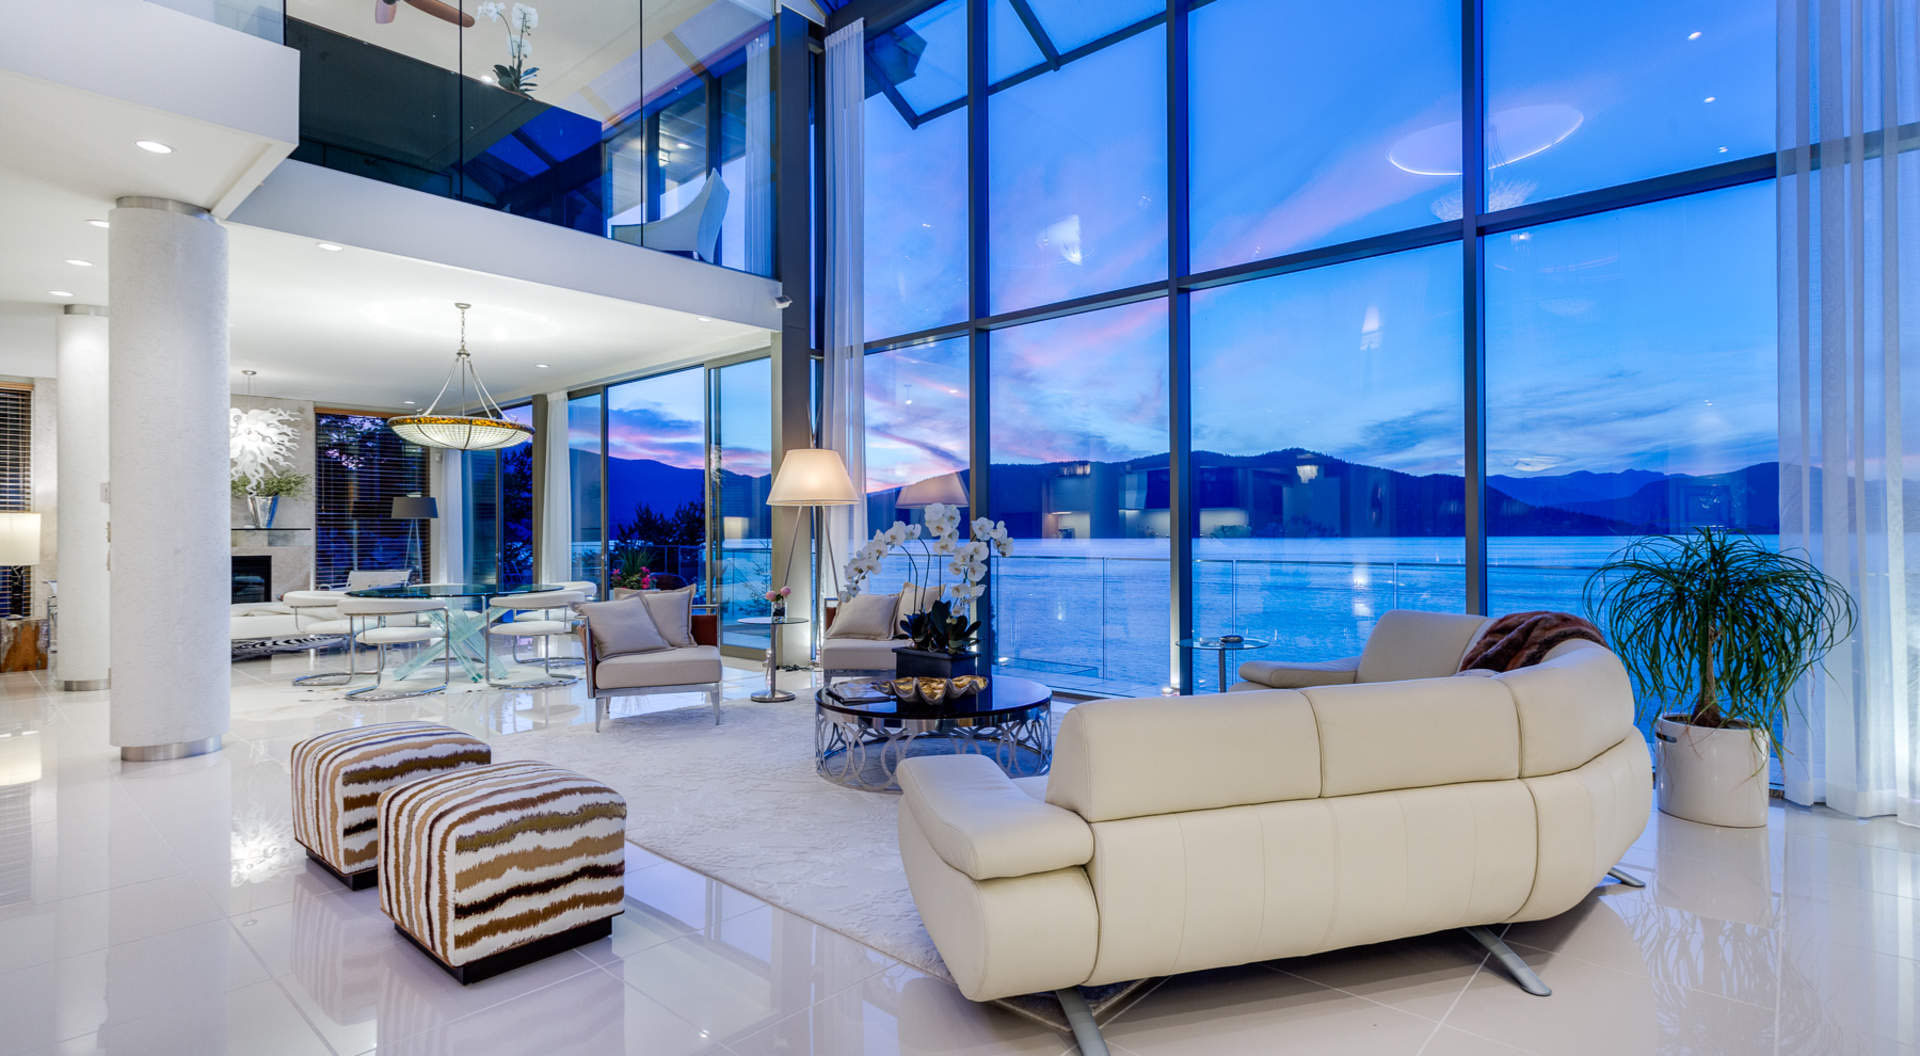 Exquisite Contemporary Waterfront Home With Dramatic Coastal Views IDesignArch Interior